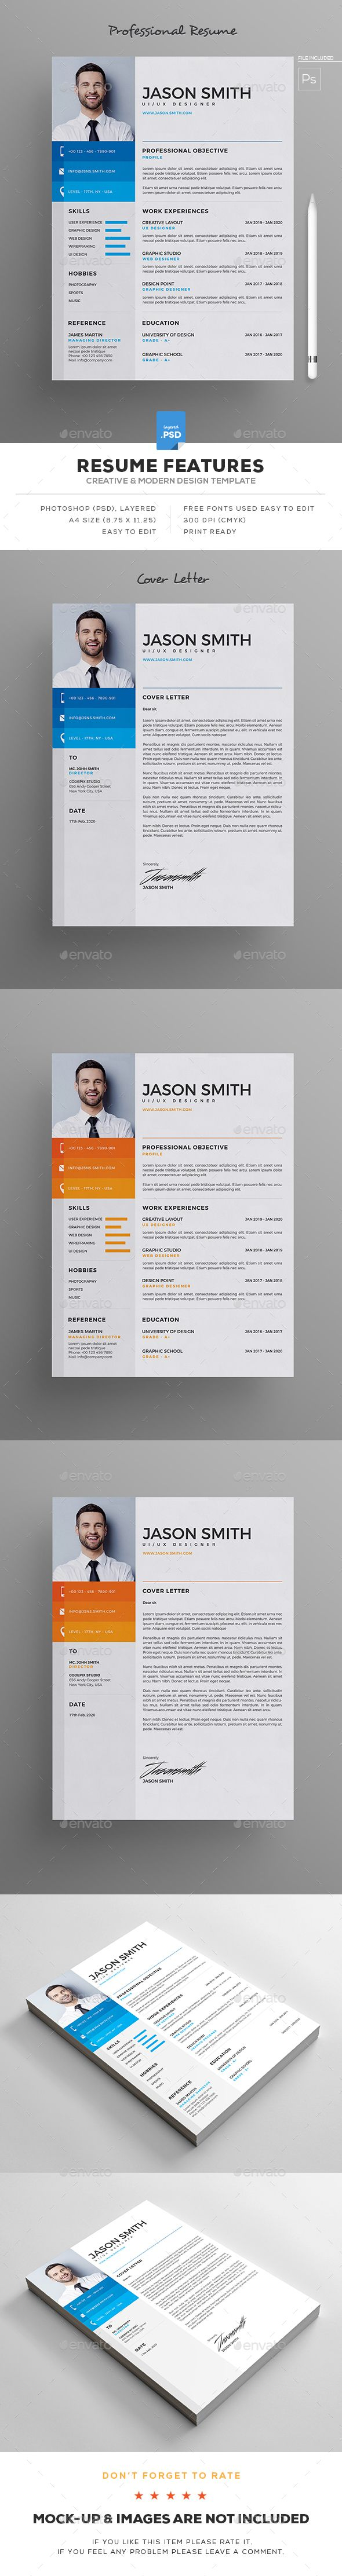 resume - Professional Creative Resume